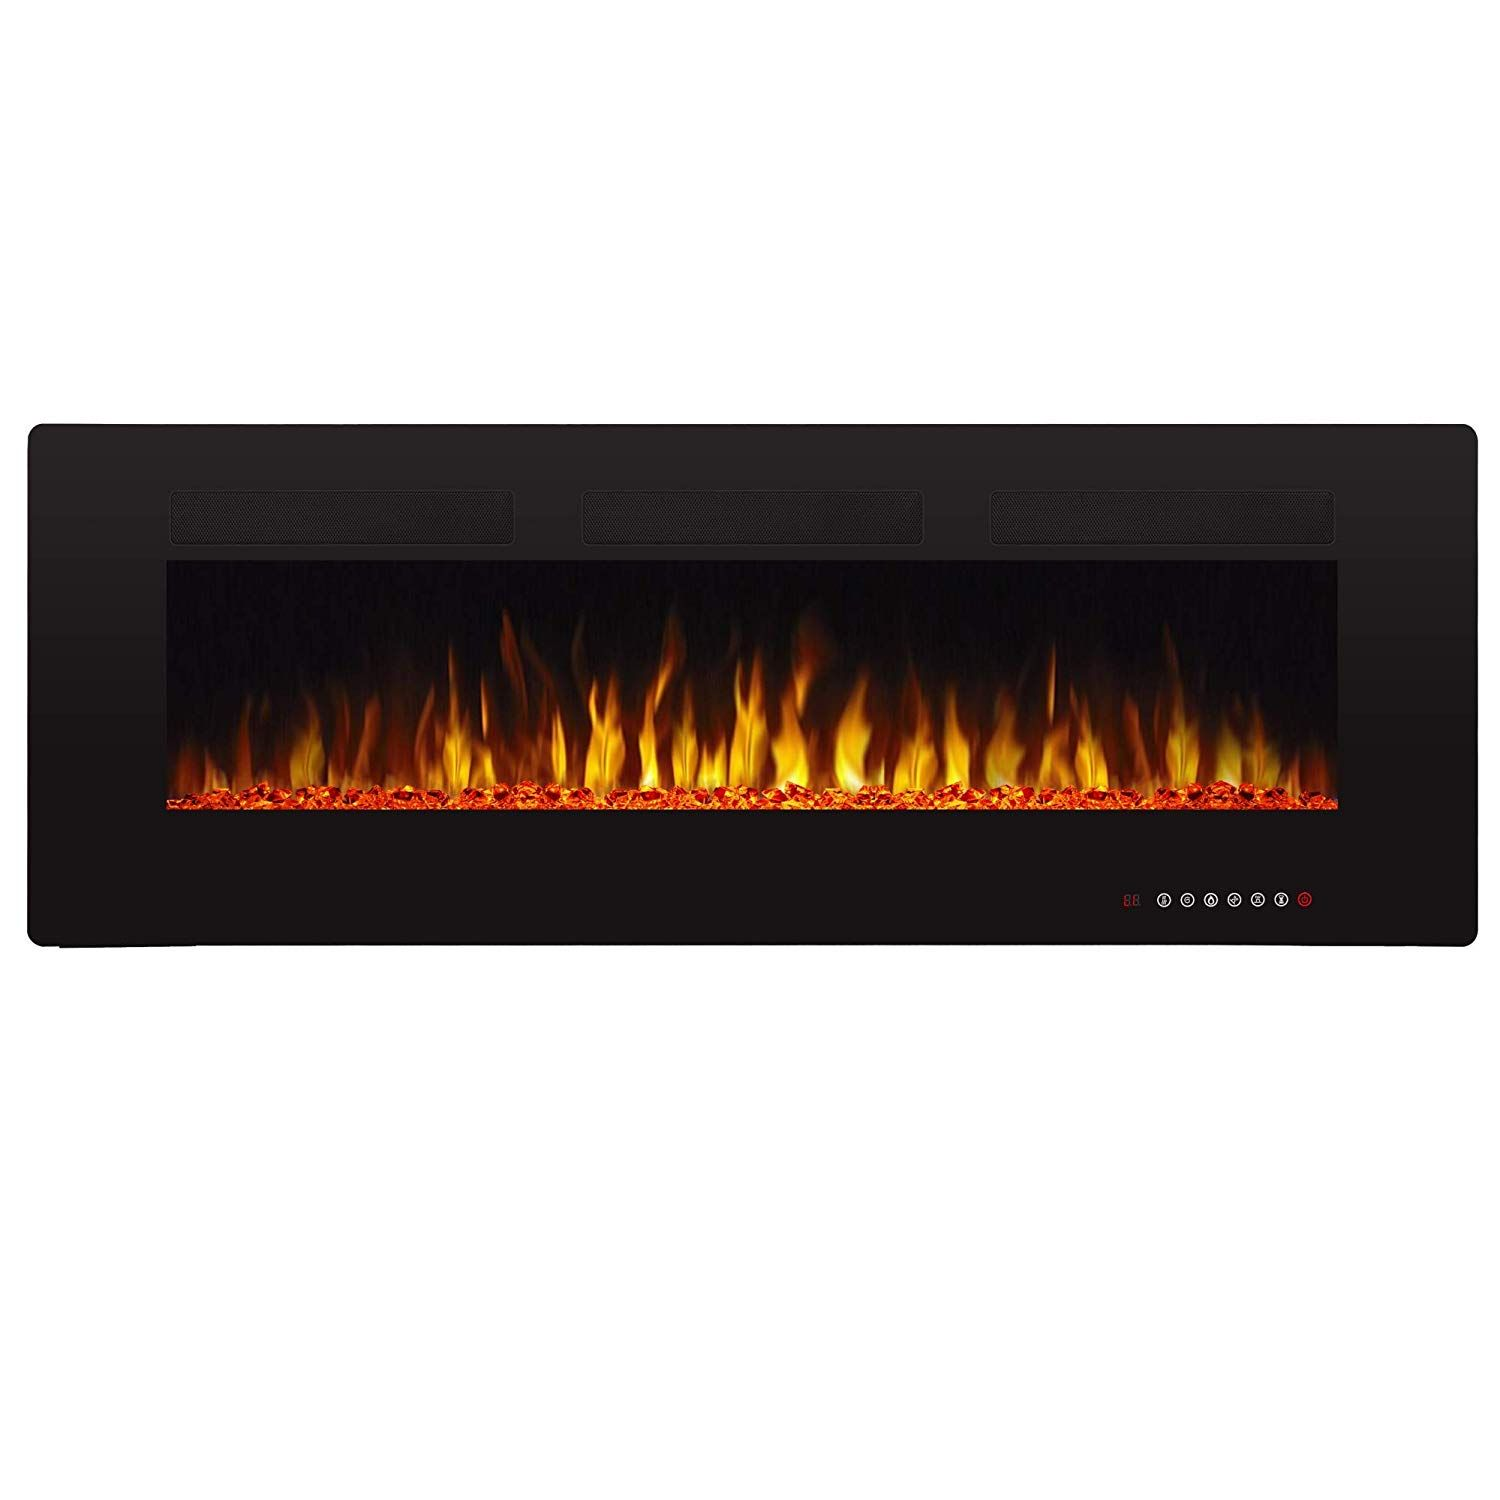 Amazon Com Antarctic Star 50 Recessed Electric Fireplace Built In Wall Wall Mounted Electric Best Electric Fireplace Fireplace Recessed Electric Fireplace